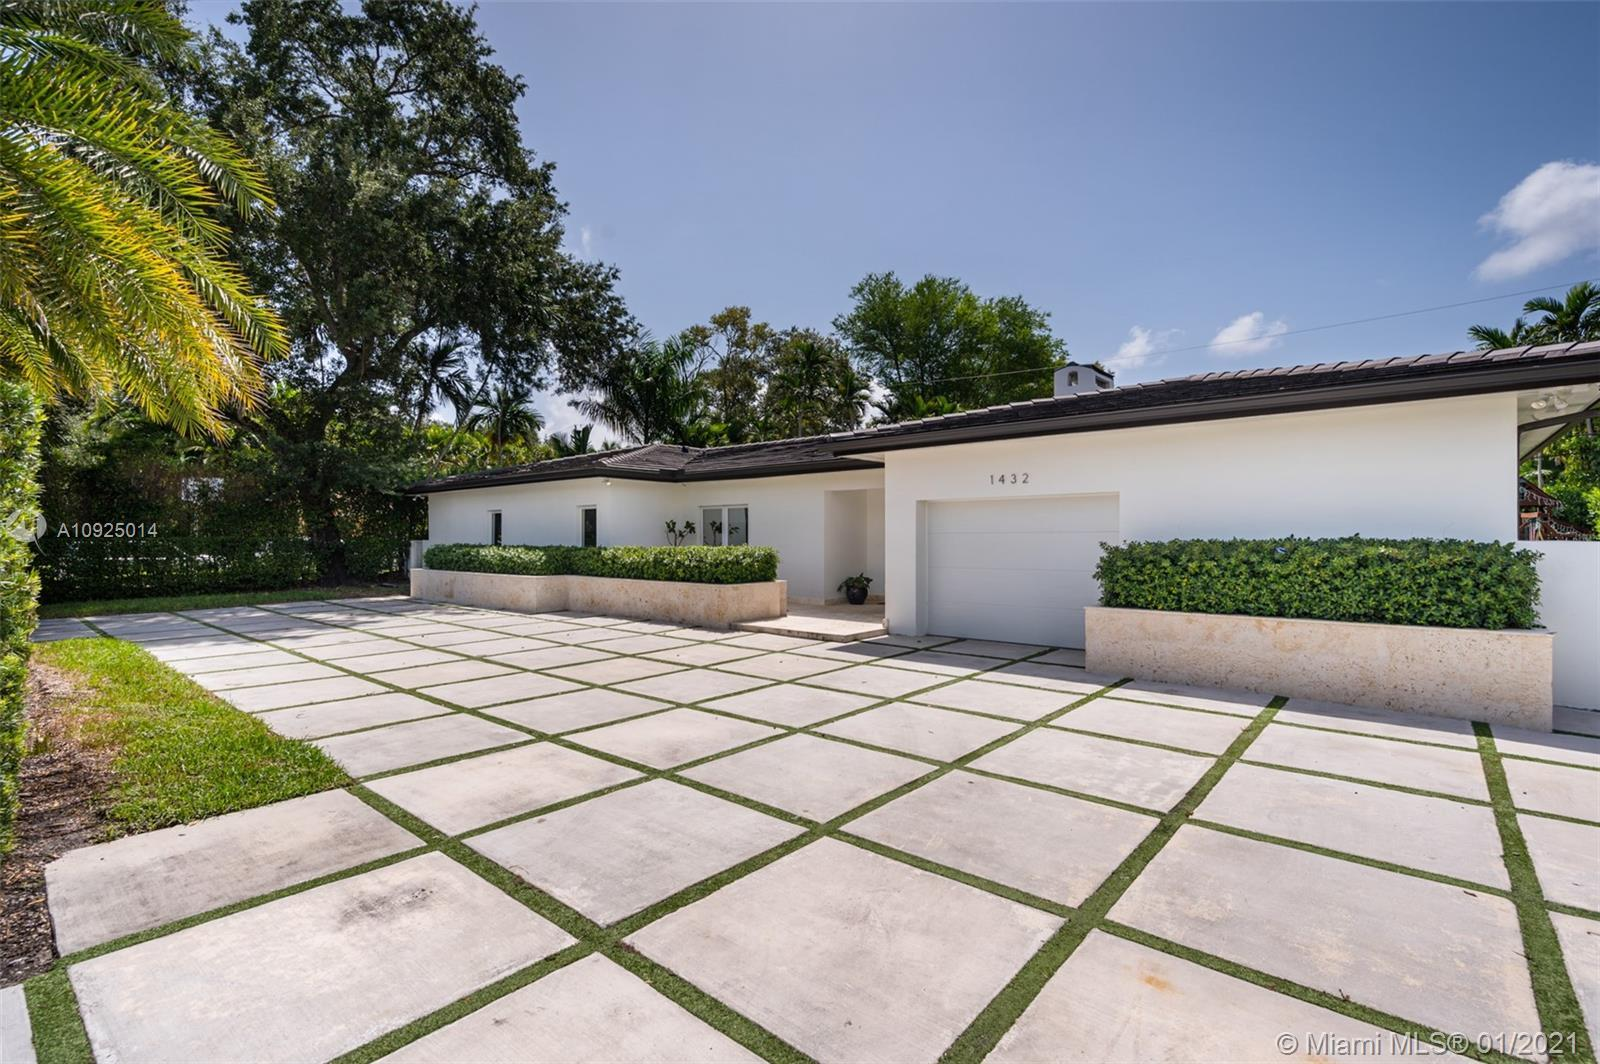 Completely renovated in 2017, this inviting residence boasts a classic contemporary design featuring